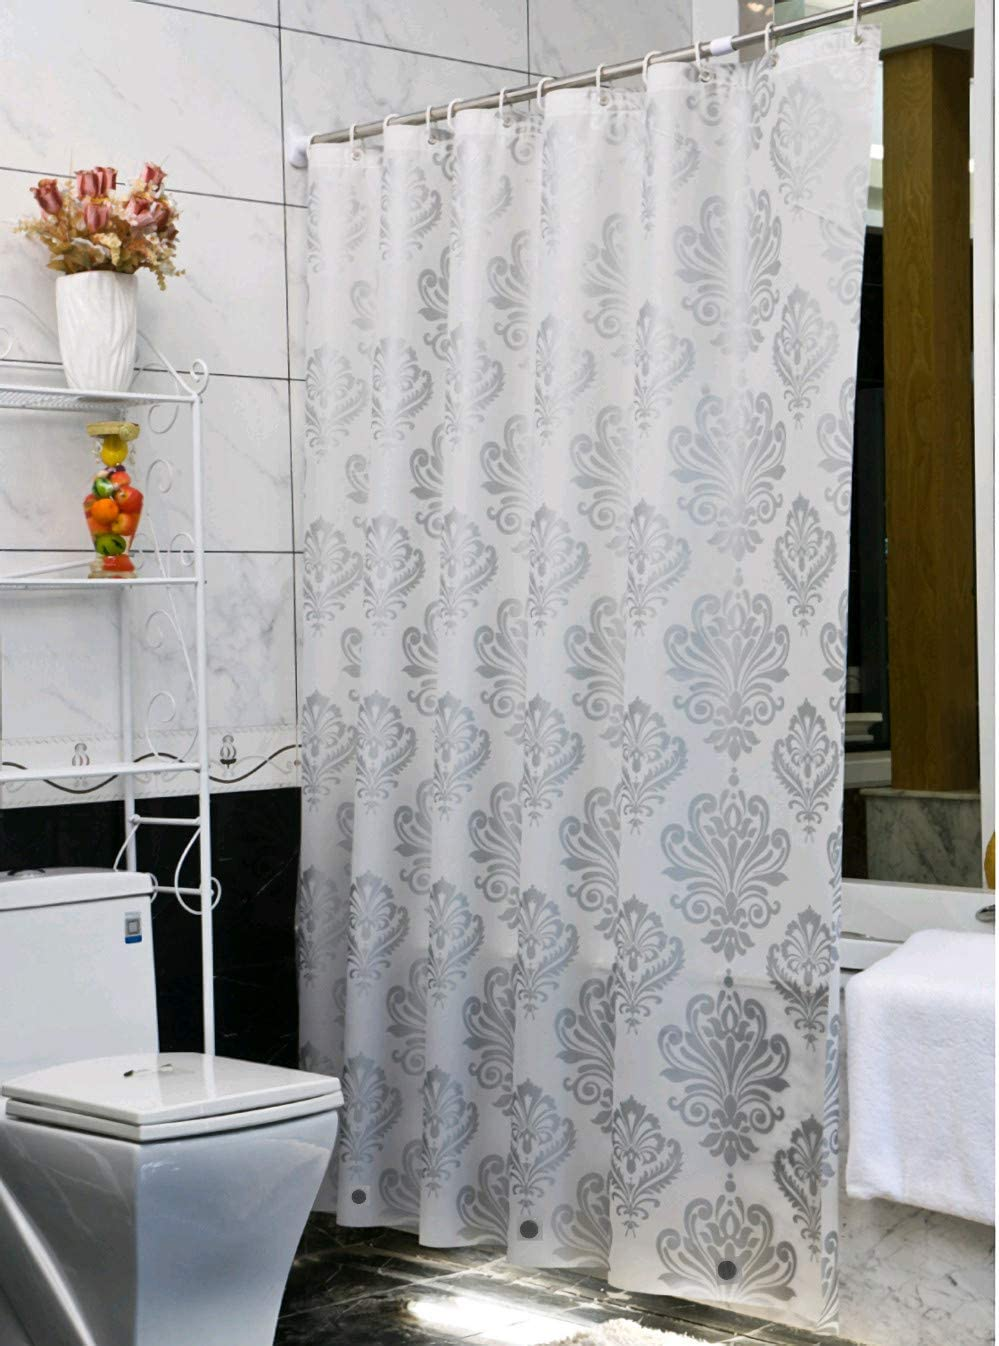 Ufelicity Shabby Chic Decor Waterproof Shower Curtain PEVA, 72 Inch by 78 Inch No Odors Bath Curtain Liner Durable, Sliver Grey Damask Pattern Design with Rings for Adults